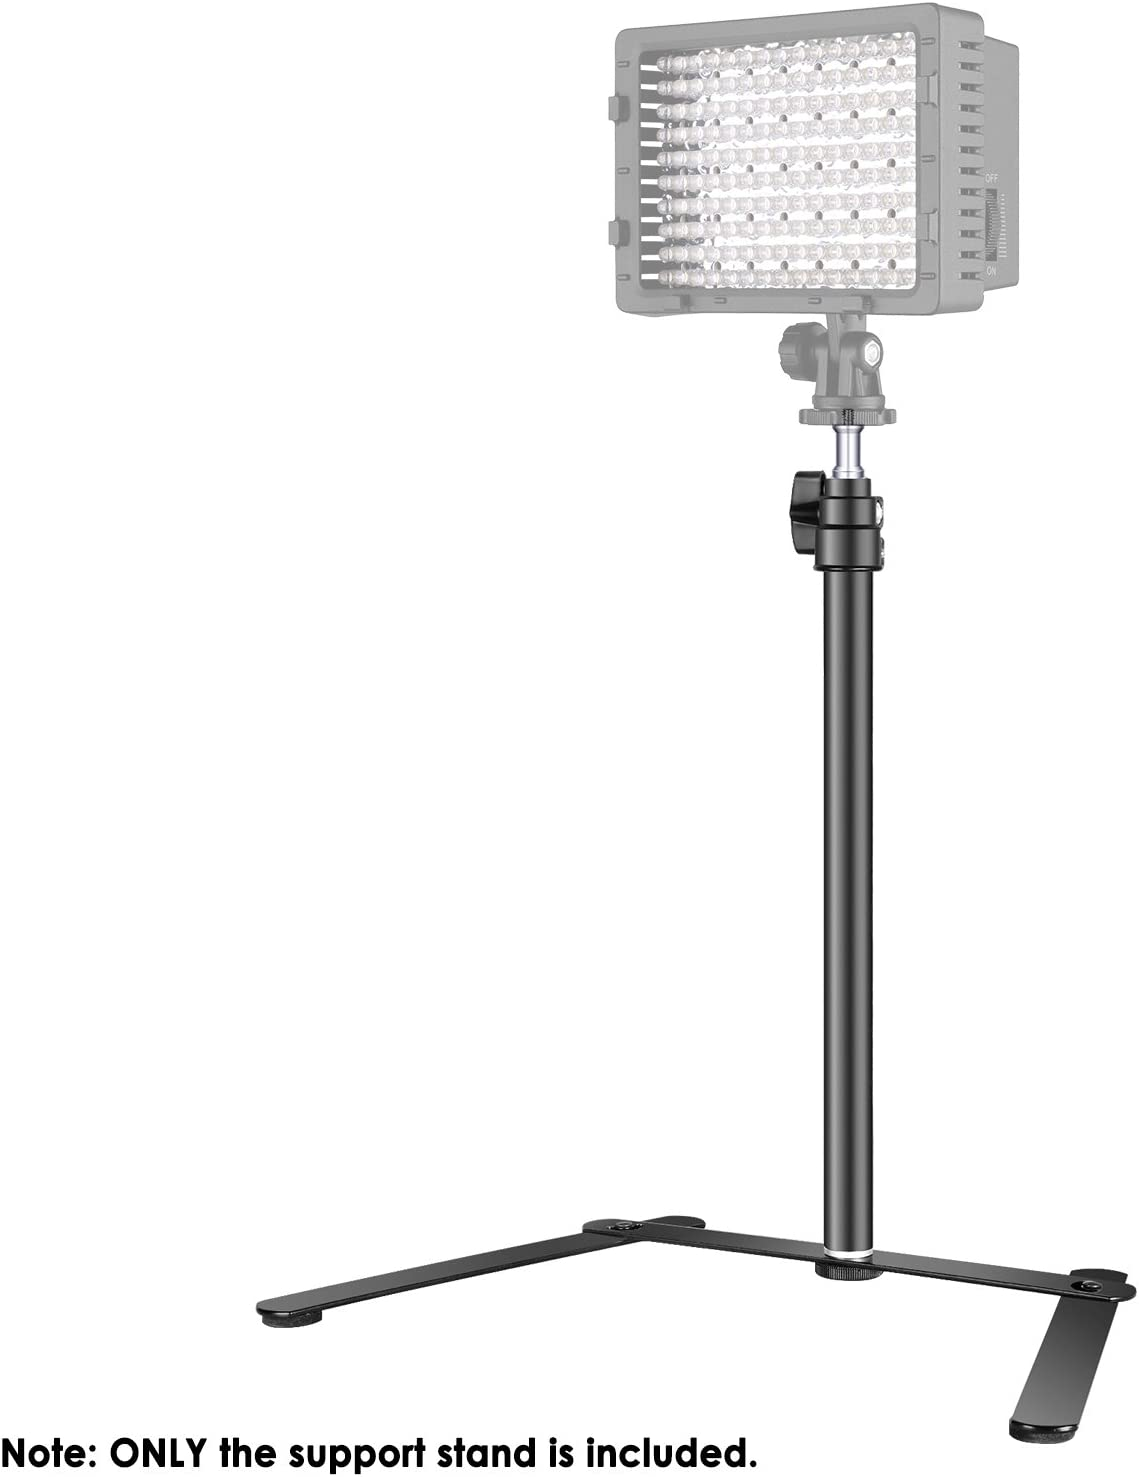 Photo Video Shooting Aluminum Alloy Neewer Tabletop Light Stand Clip Stand with 1//4inch Screw for Ring Light and LED Light Adjustable 12.5-20.6 inches//32-52cm for Make Up Live Streaming